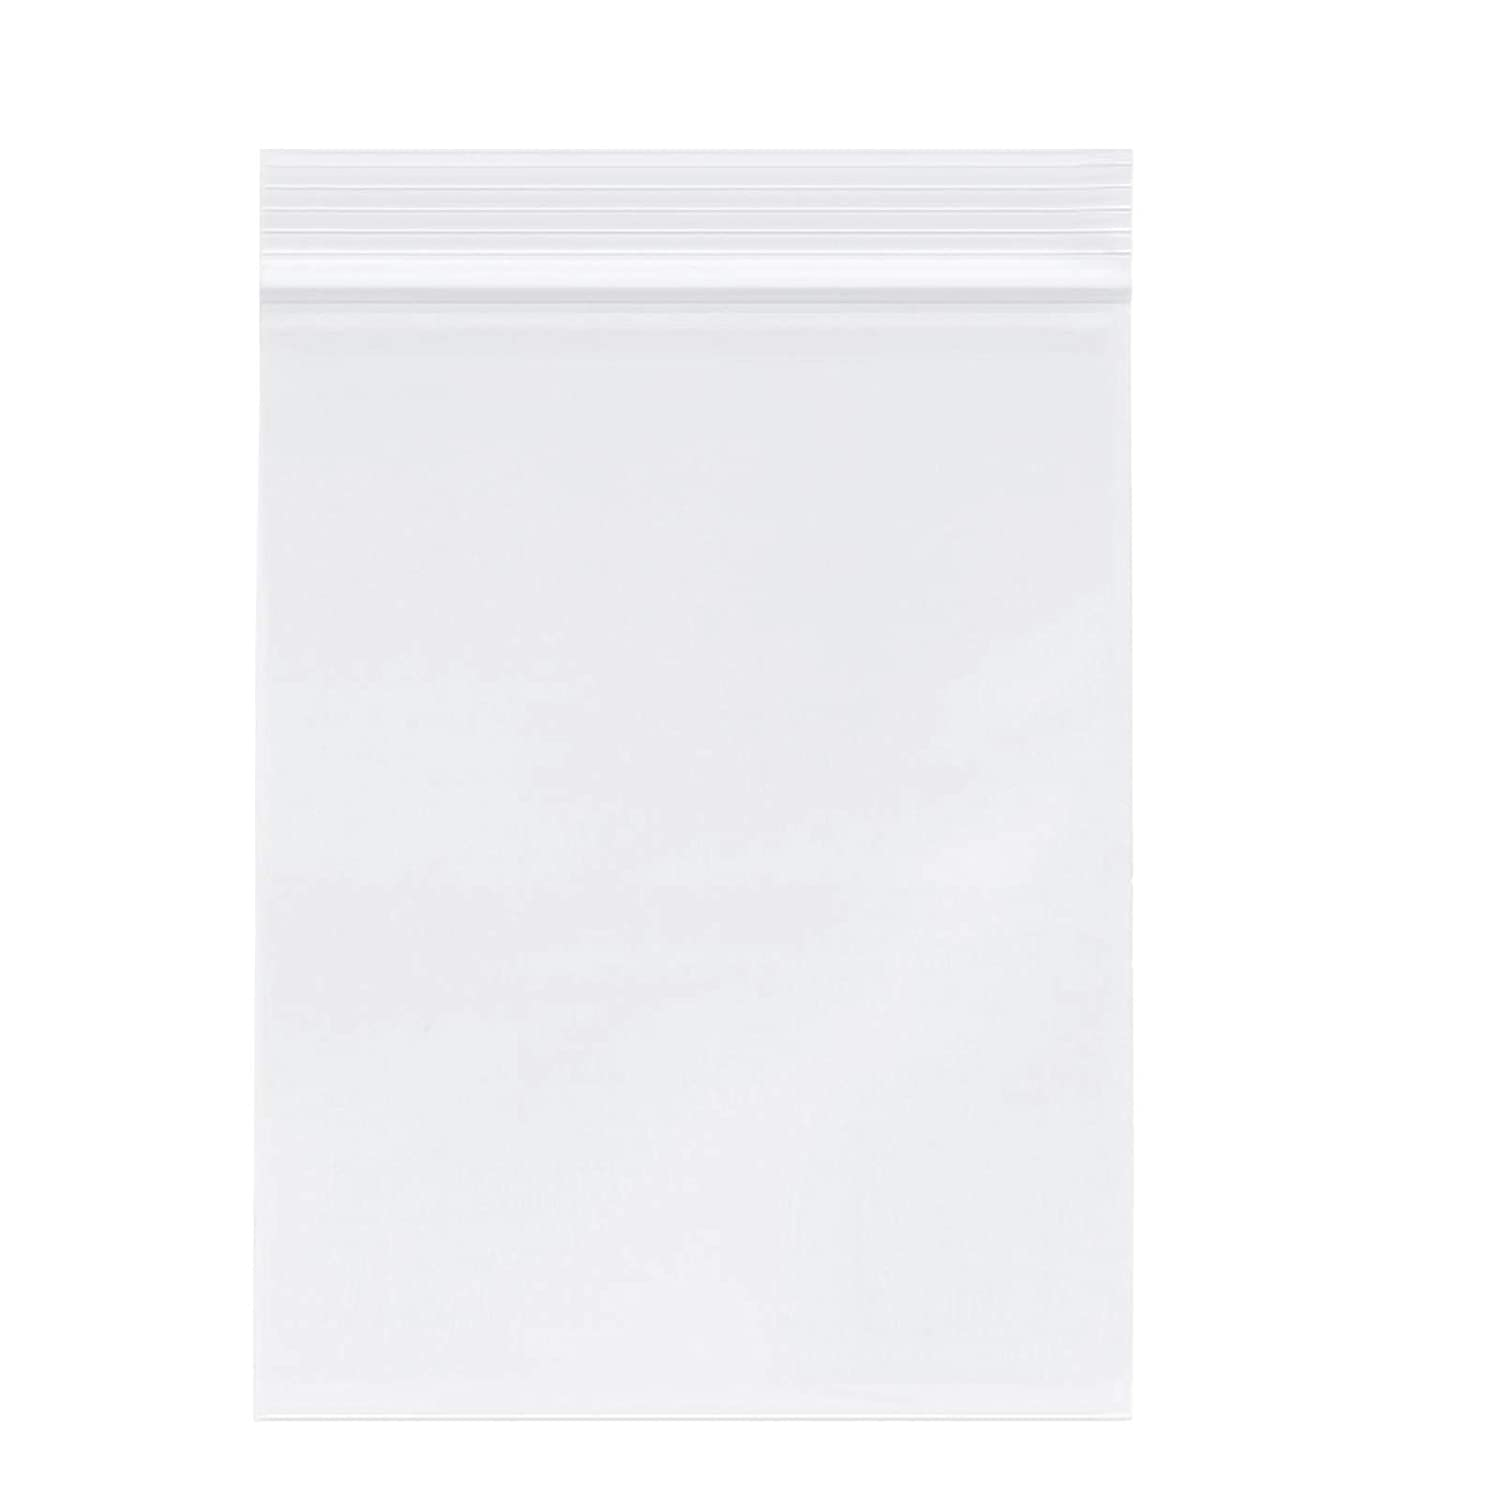 "3"" X 5"" (1000 PCS) Clear Reclosable Zip Poly Plastic Bags - 3.15 Mil Resealable Lock Seal Zipper Poly Bags for Coins, Jewelry, Snacks, Seeds"